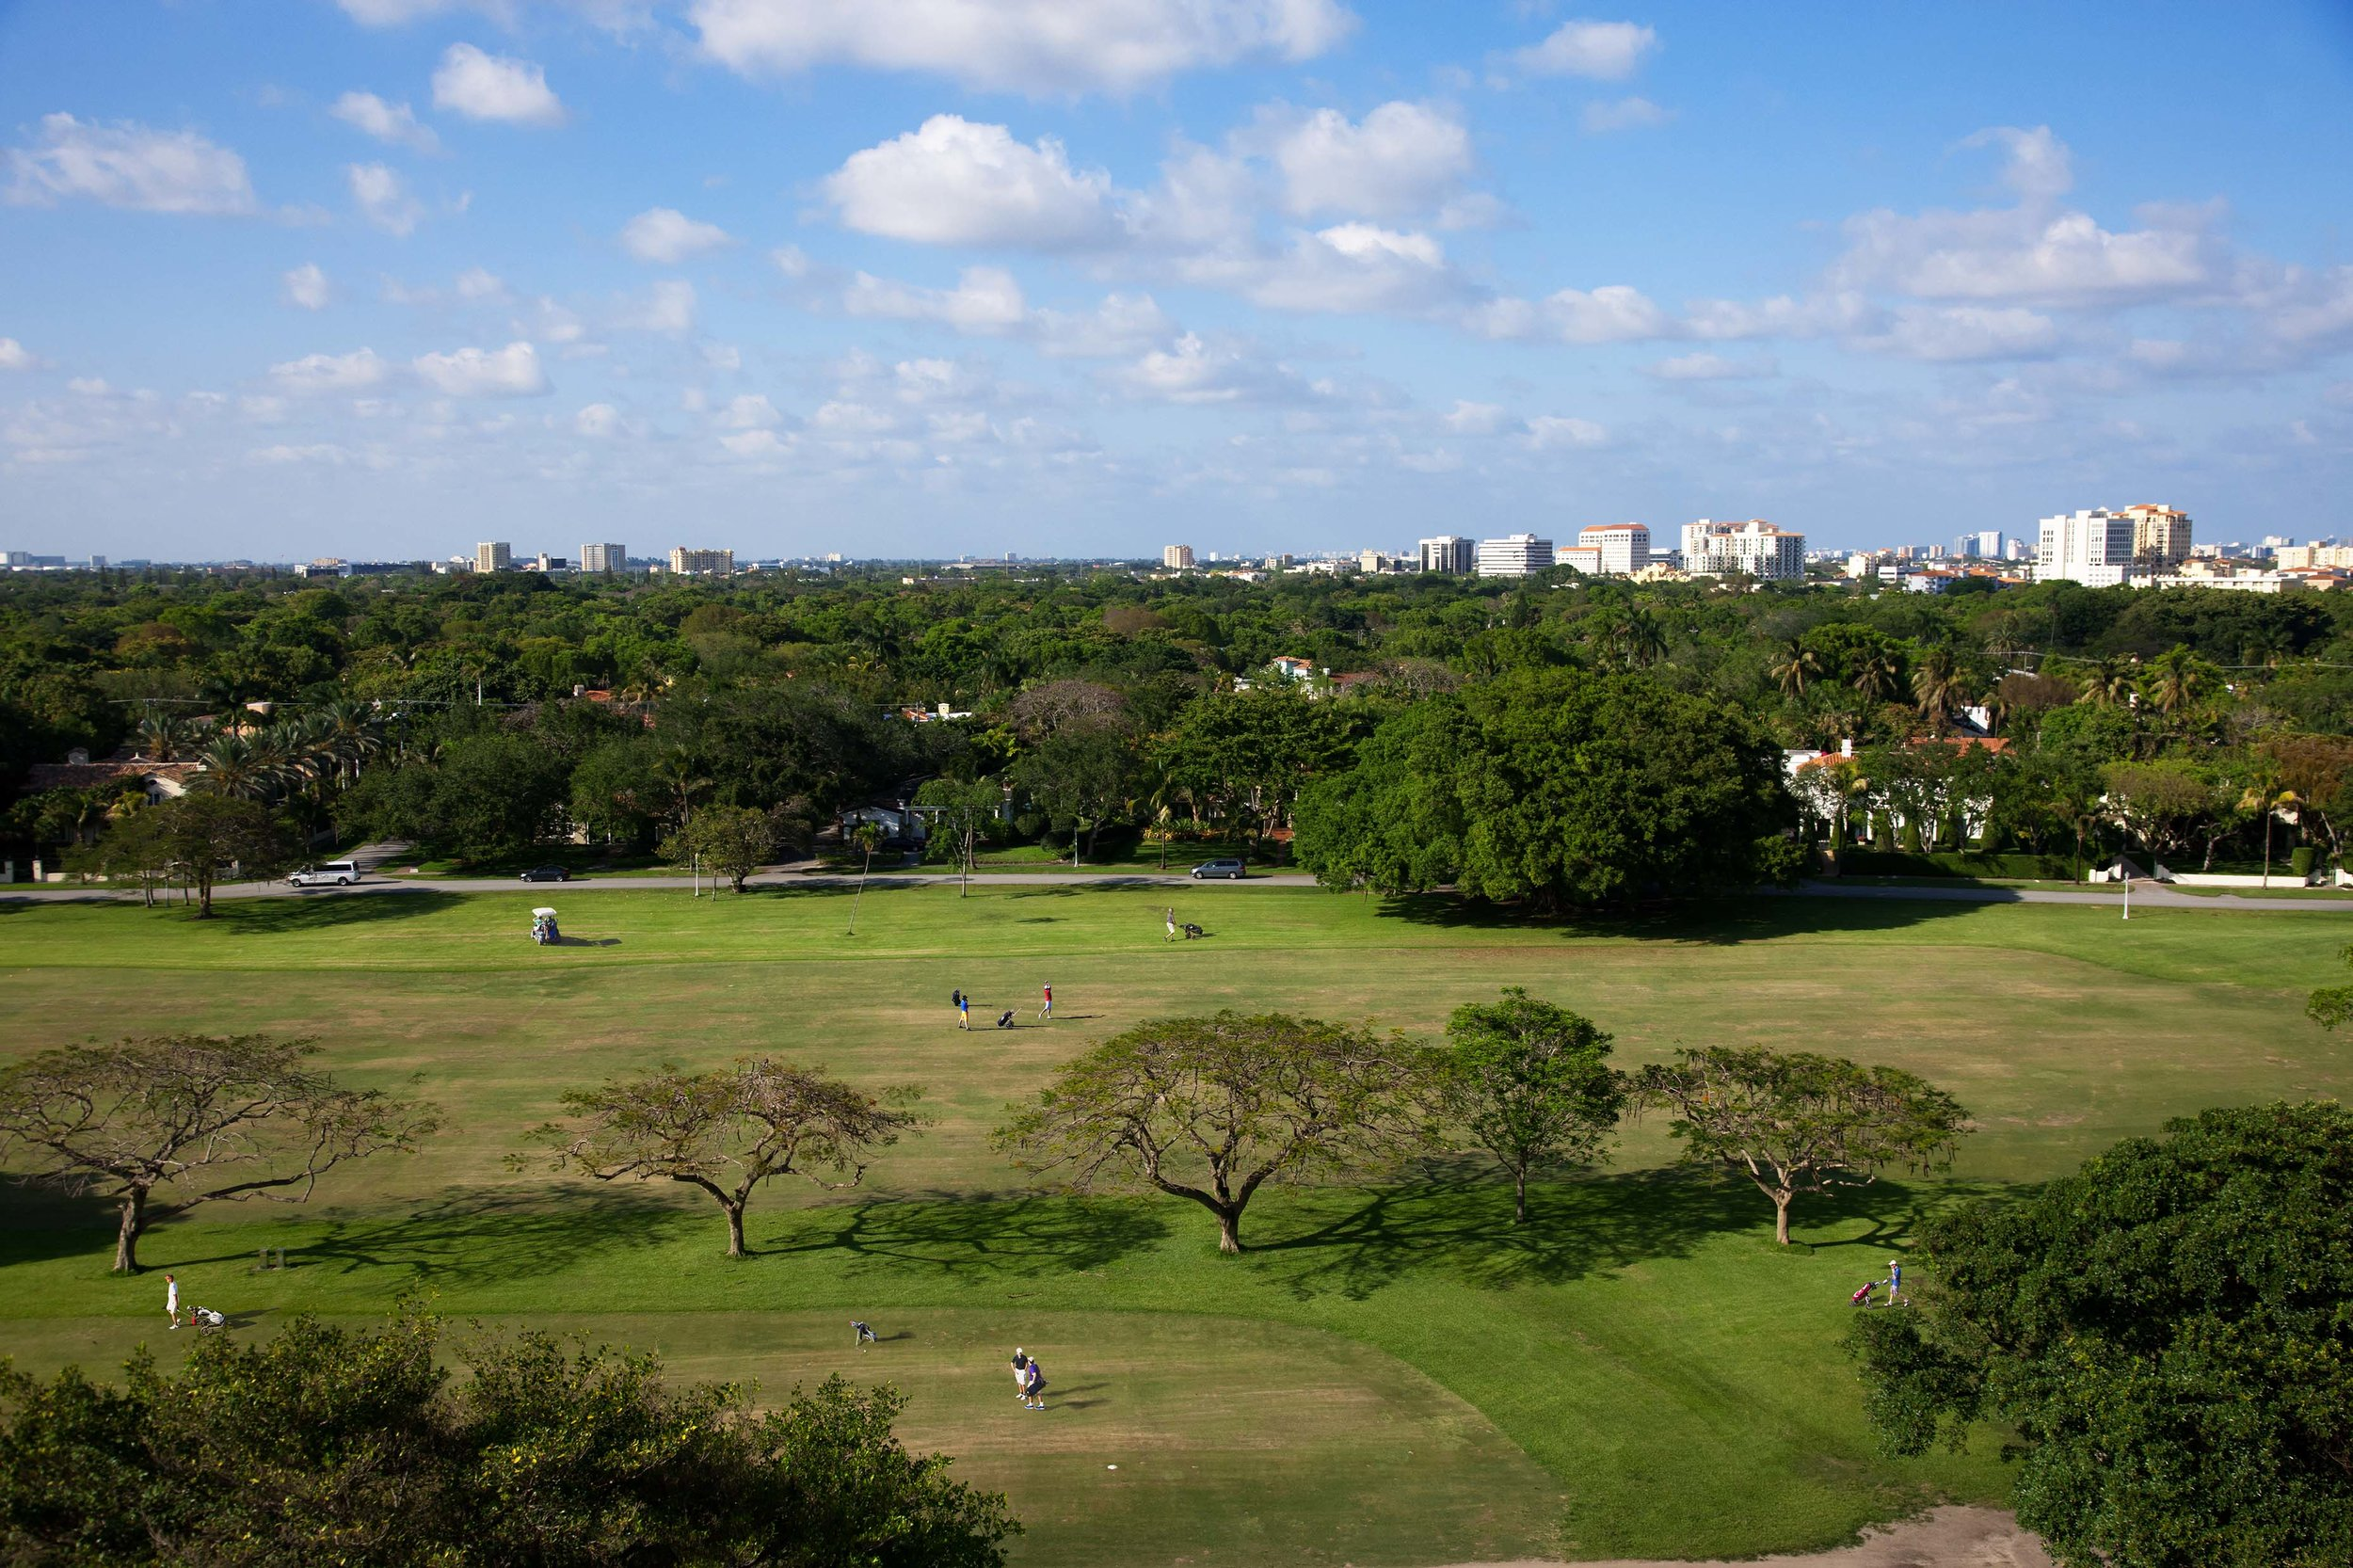 Golf and City, 2012